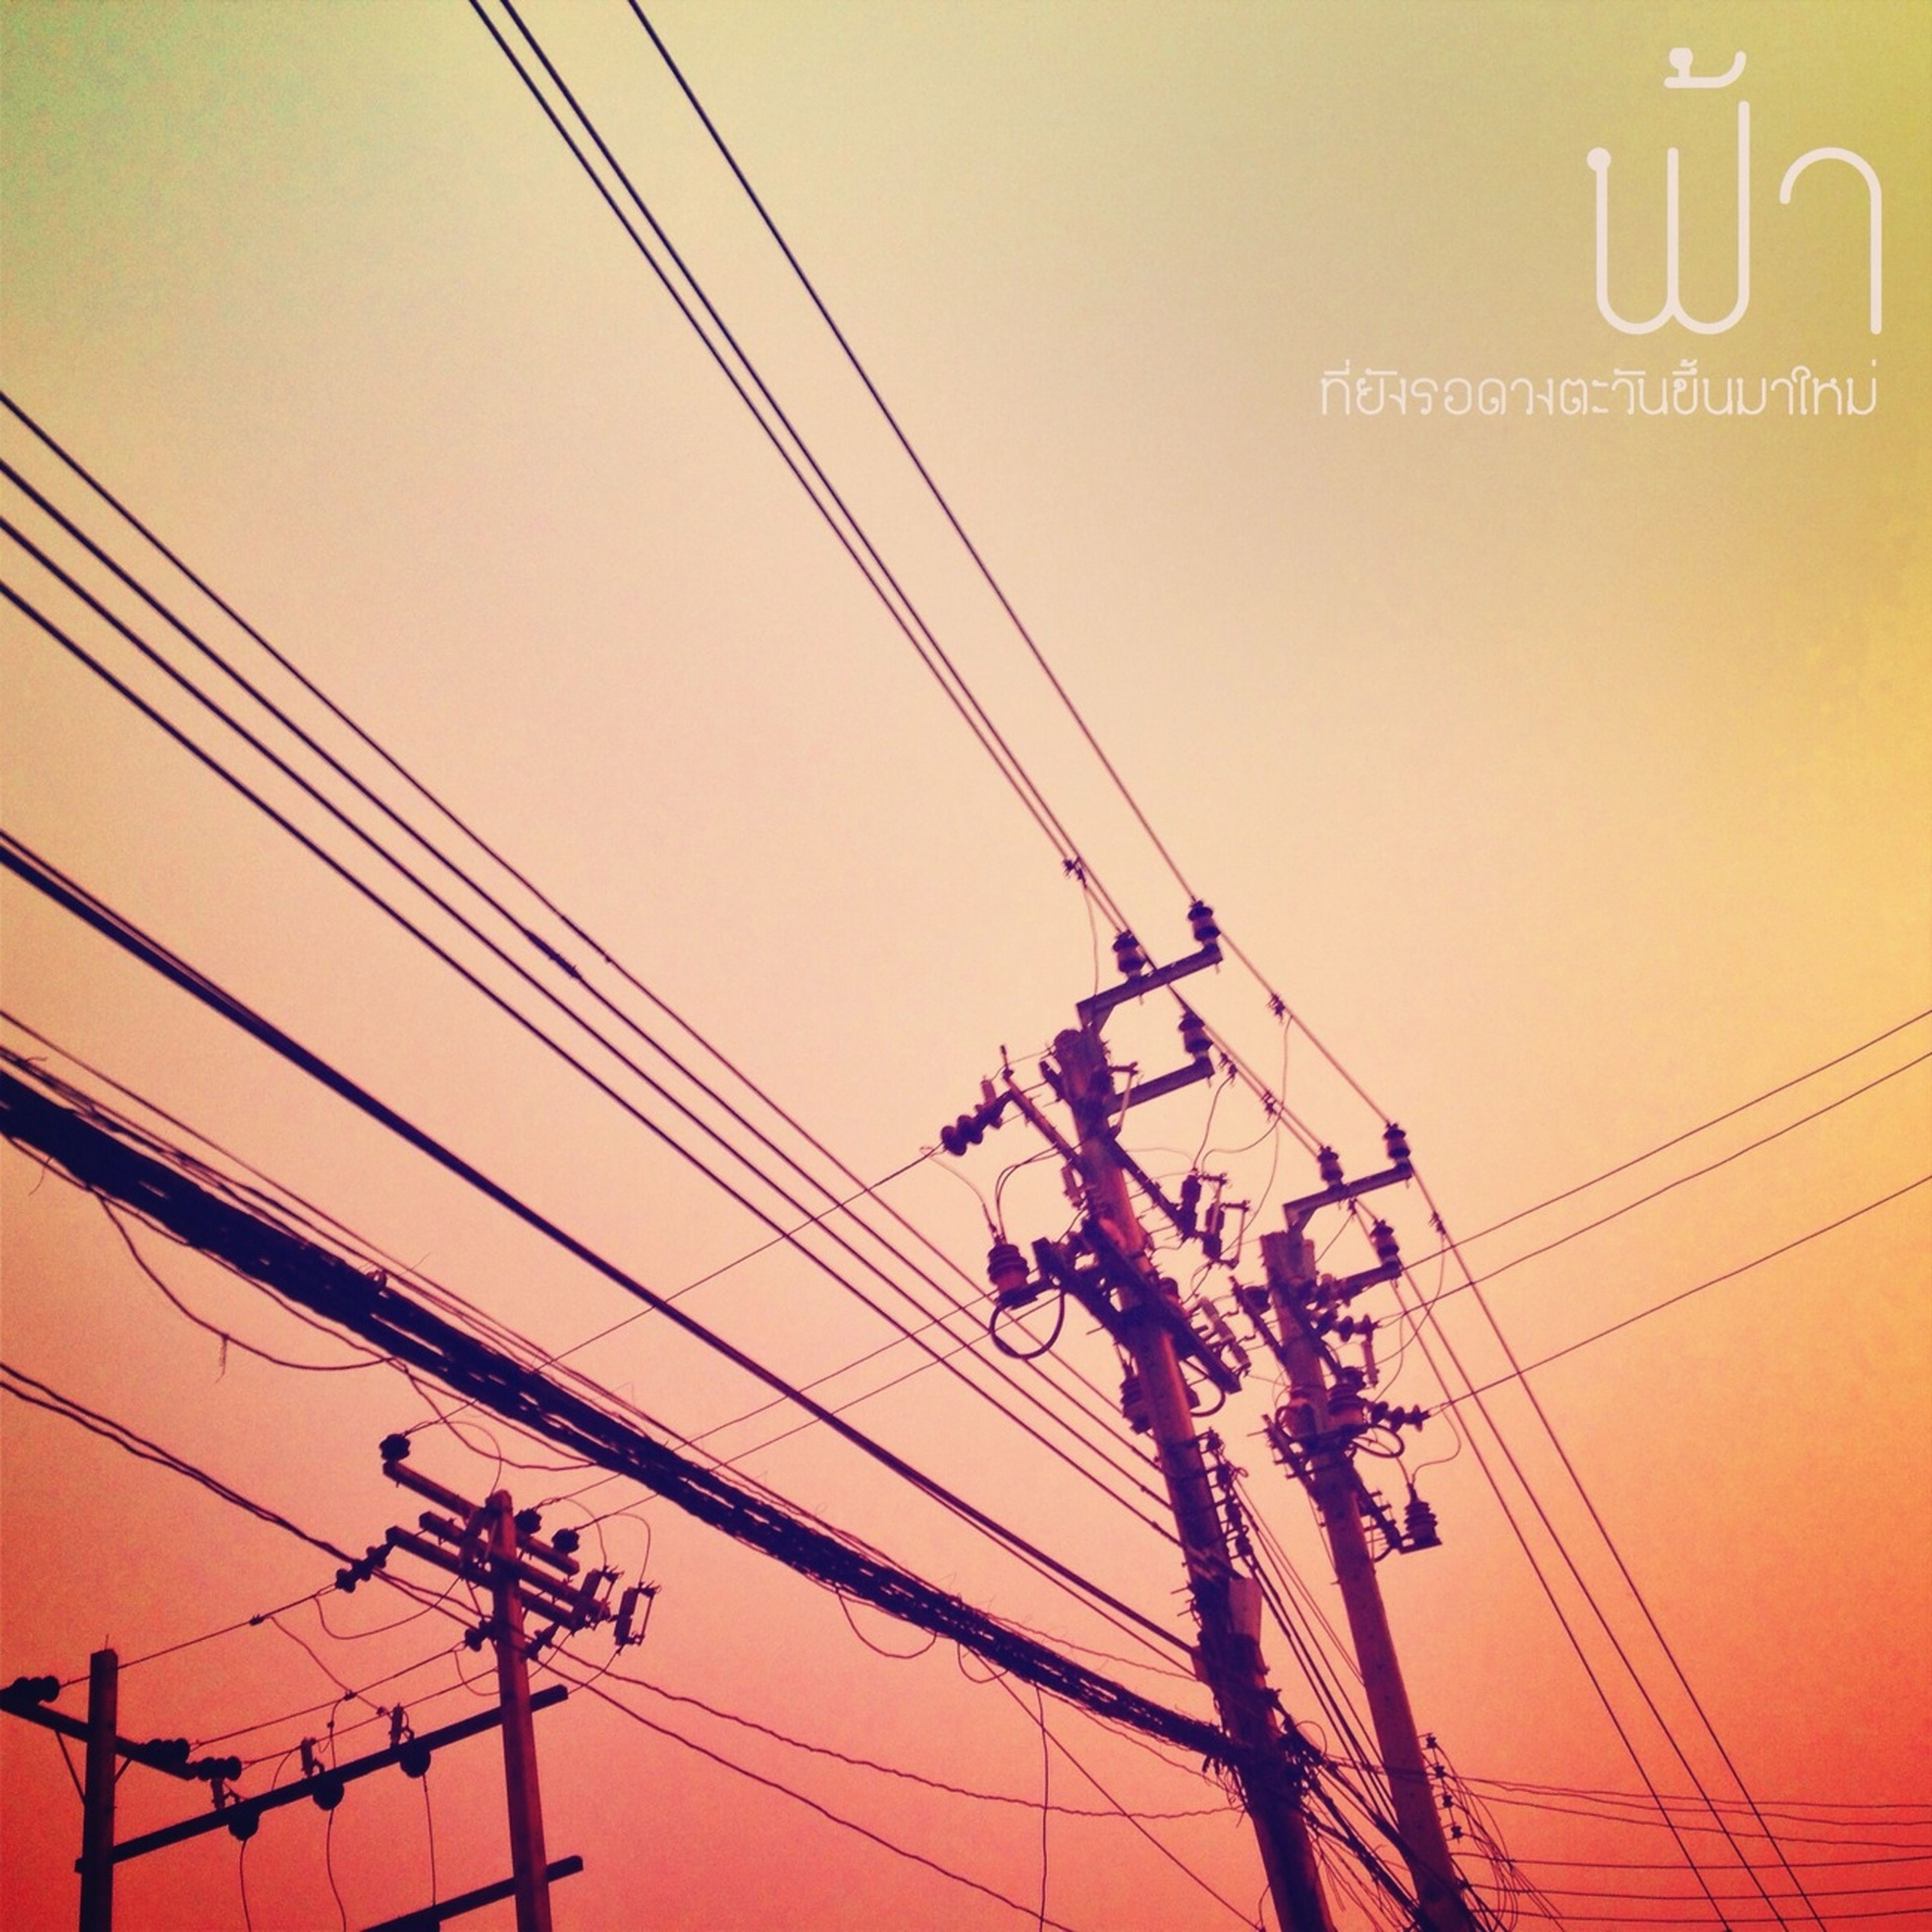 power line, electricity pylon, power supply, cable, electricity, connection, technology, communication, fuel and power generation, low angle view, sunset, power cable, orange color, sky, clear sky, complexity, no people, outdoors, text, silhouette